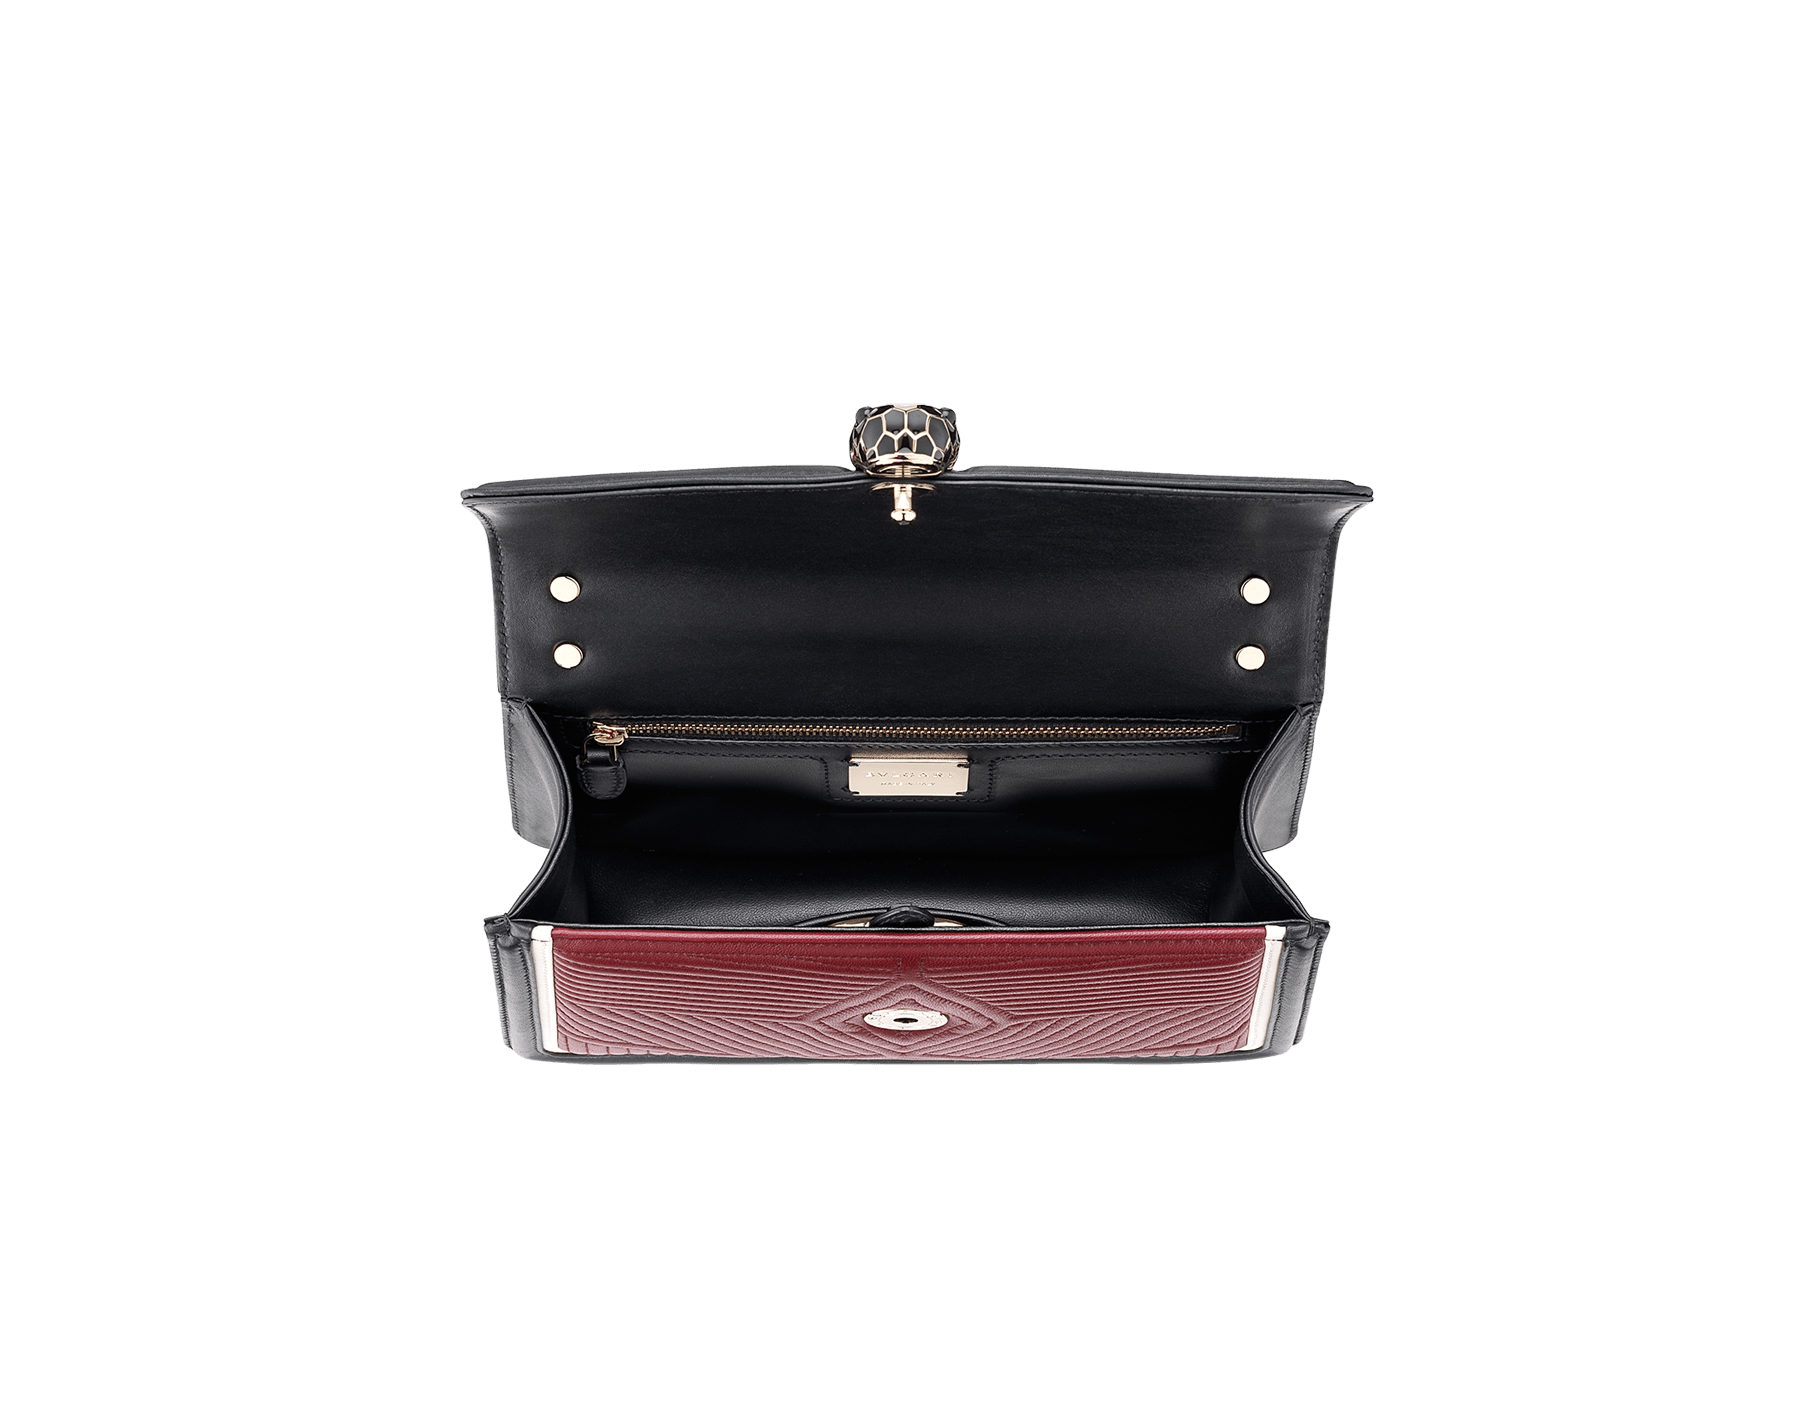 Shoulder bag Serpenti Forever featuring a Framed Quilted motif in roman garnet nappa and black smooth calf leather. Brass light gold plated tempting snake head closure in black and white enamel, with eyes in black onyx. 286628 image 5